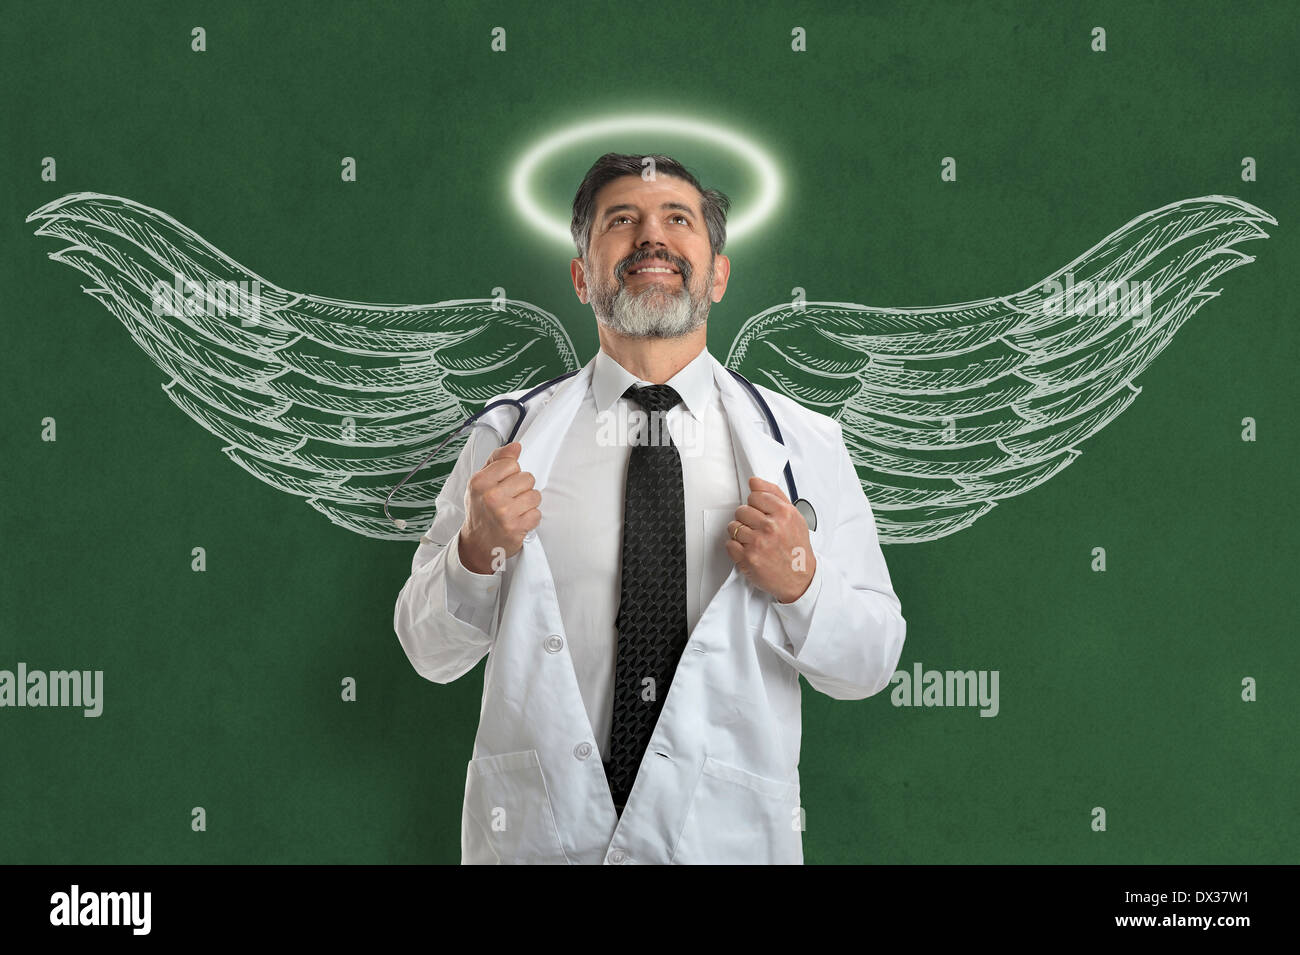 Hispanic doctor with angel wings and halo looking upwards - Stock Image